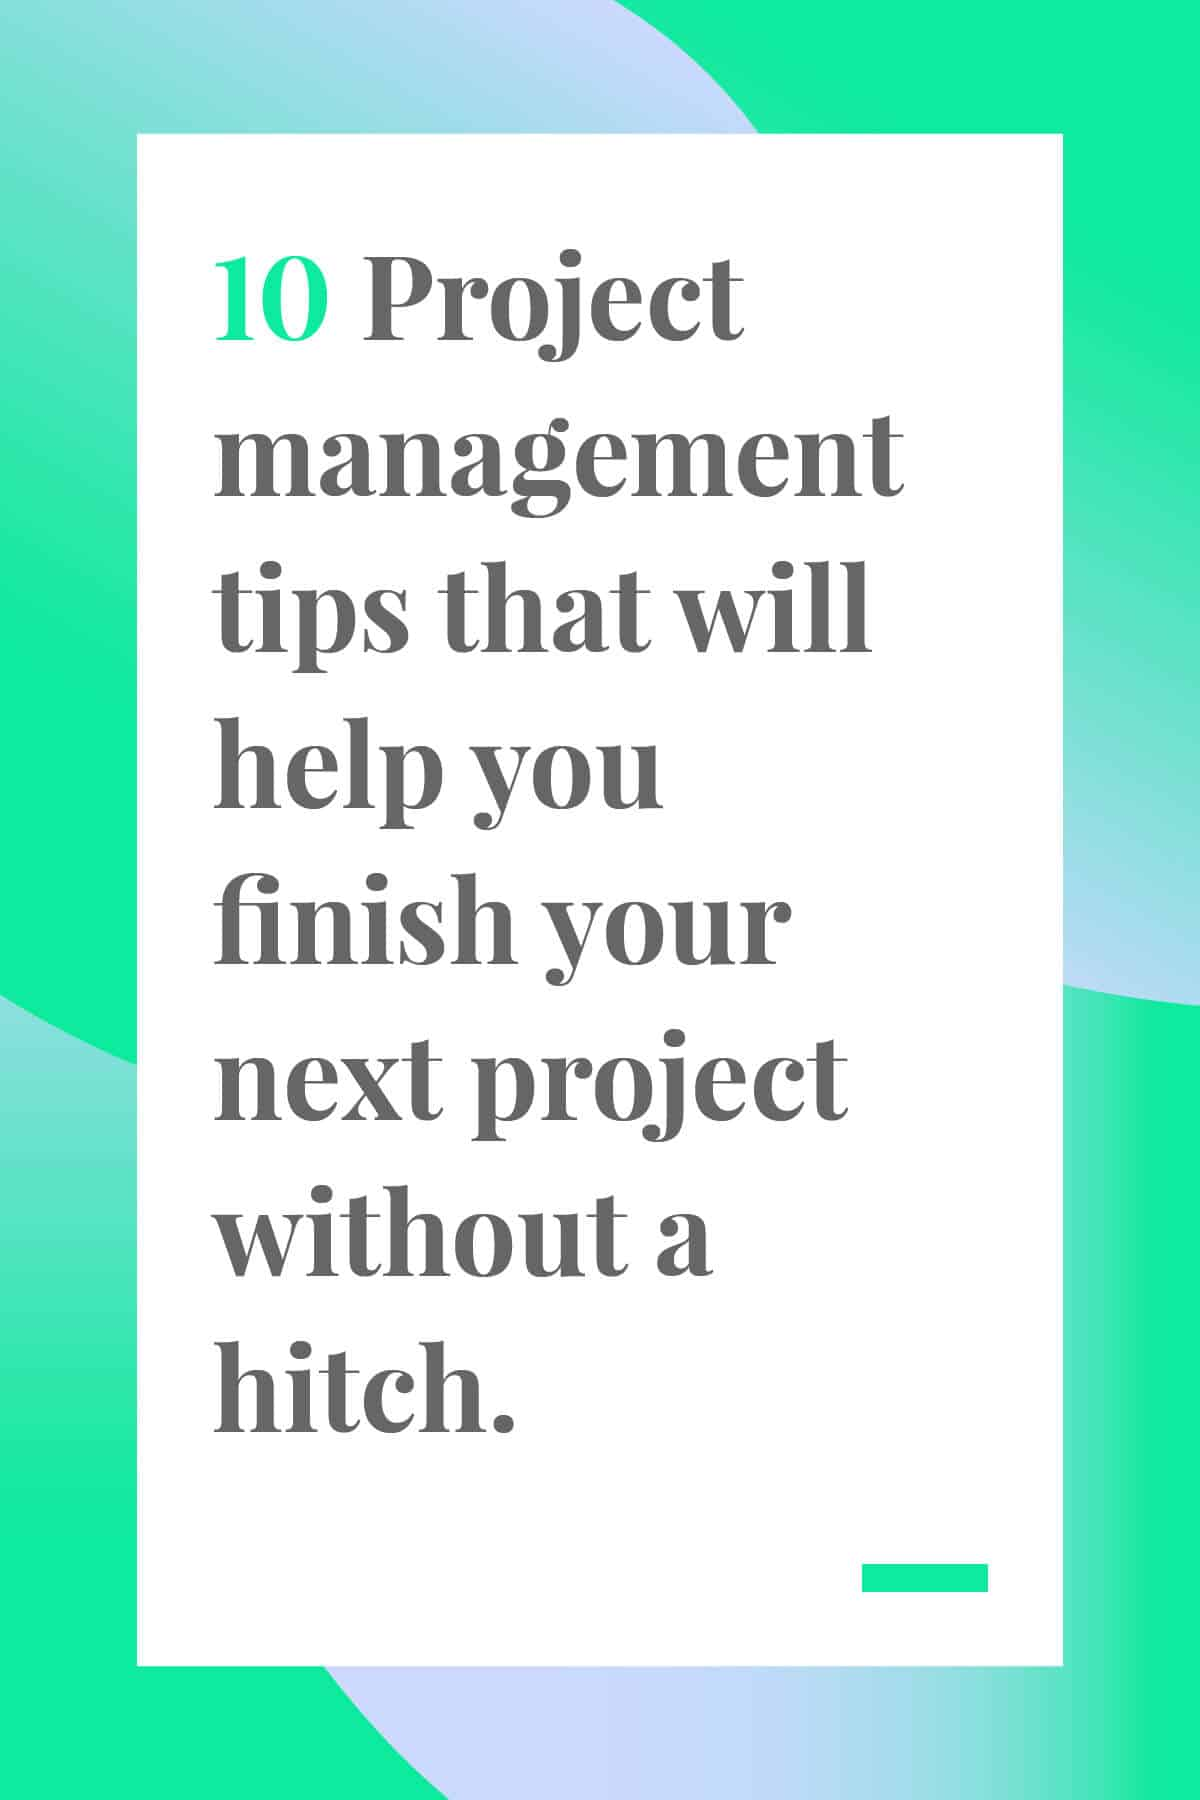 Project management is tricky. You've got to manage your team, stay on top of deadlines, and keep within your budget. This article has great tips for project managers to help you finish your next project without a hitch. #projectmanagement #teammangement #leadership